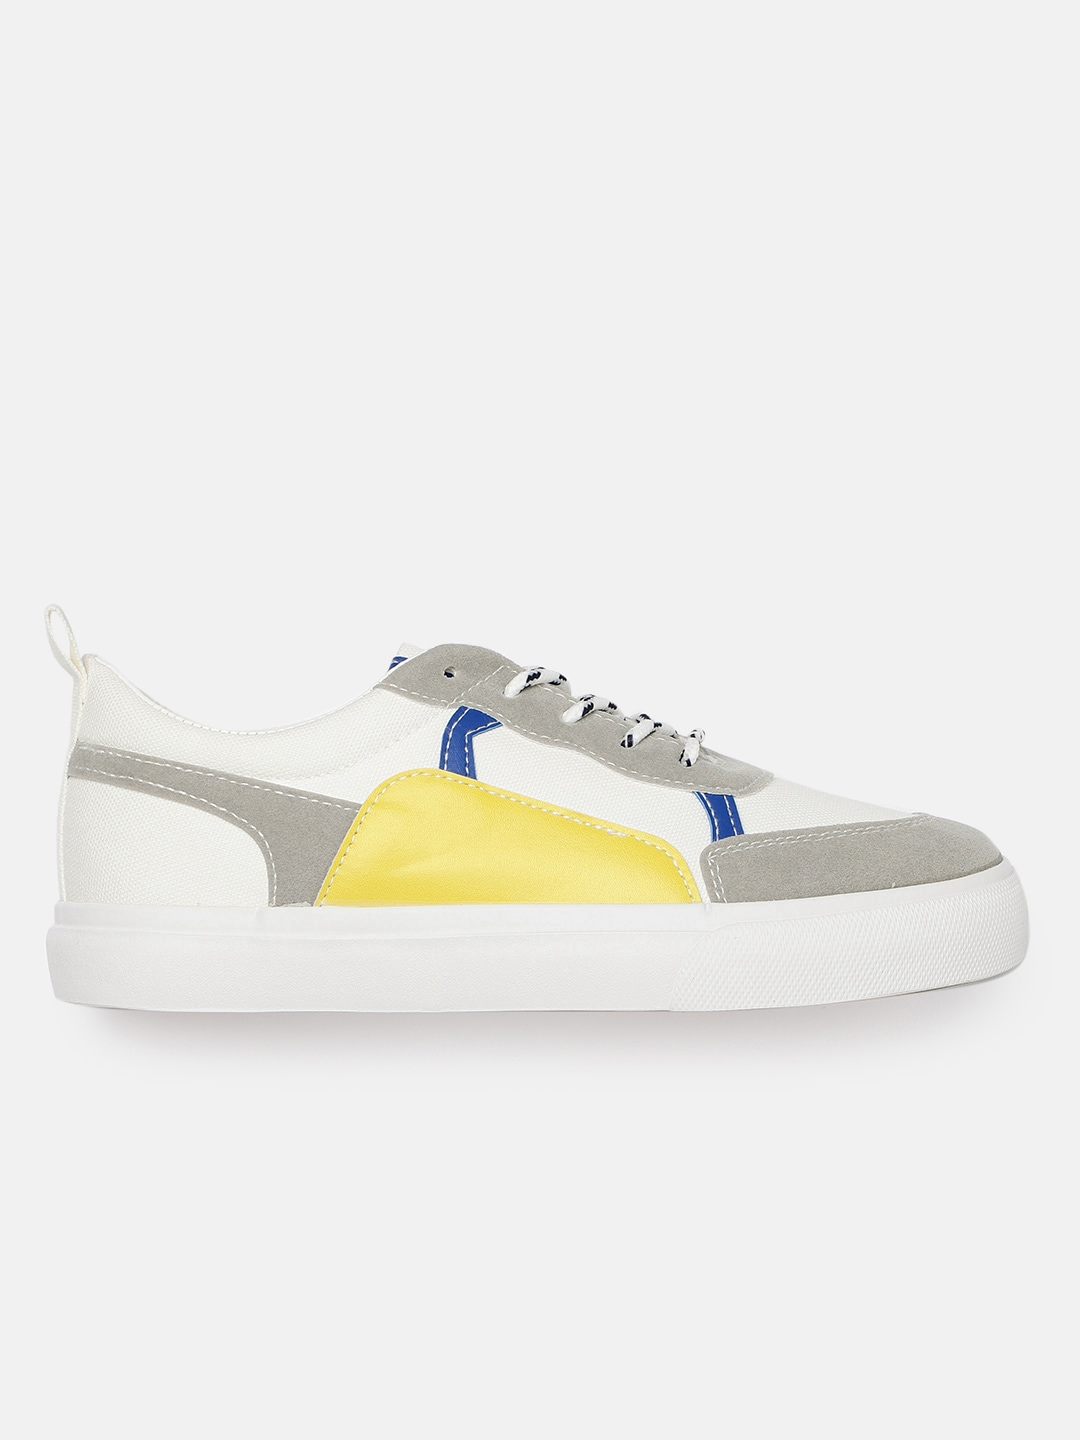 Kook N Keech Women Off-White Colourblocked Sneakers